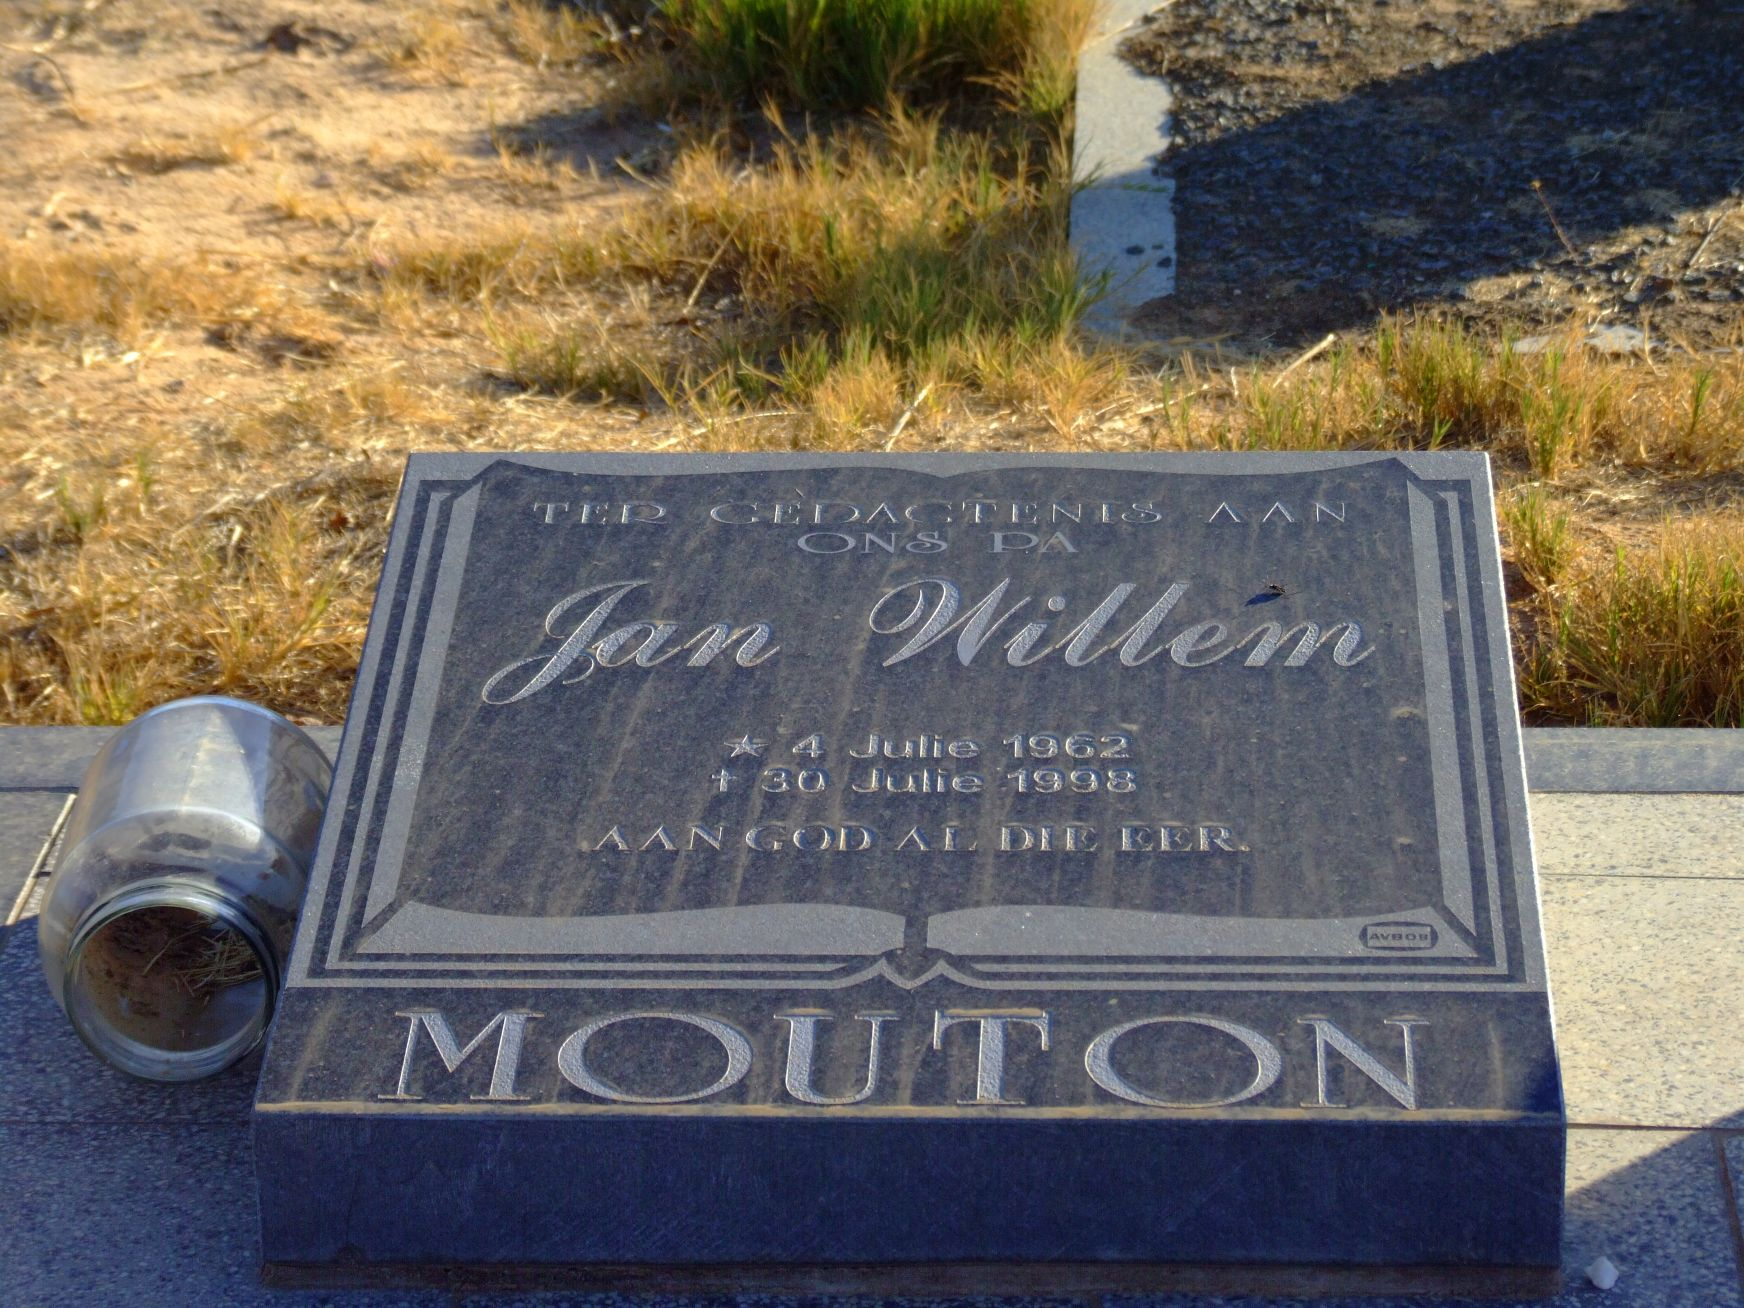 Mouton, Jan Willem